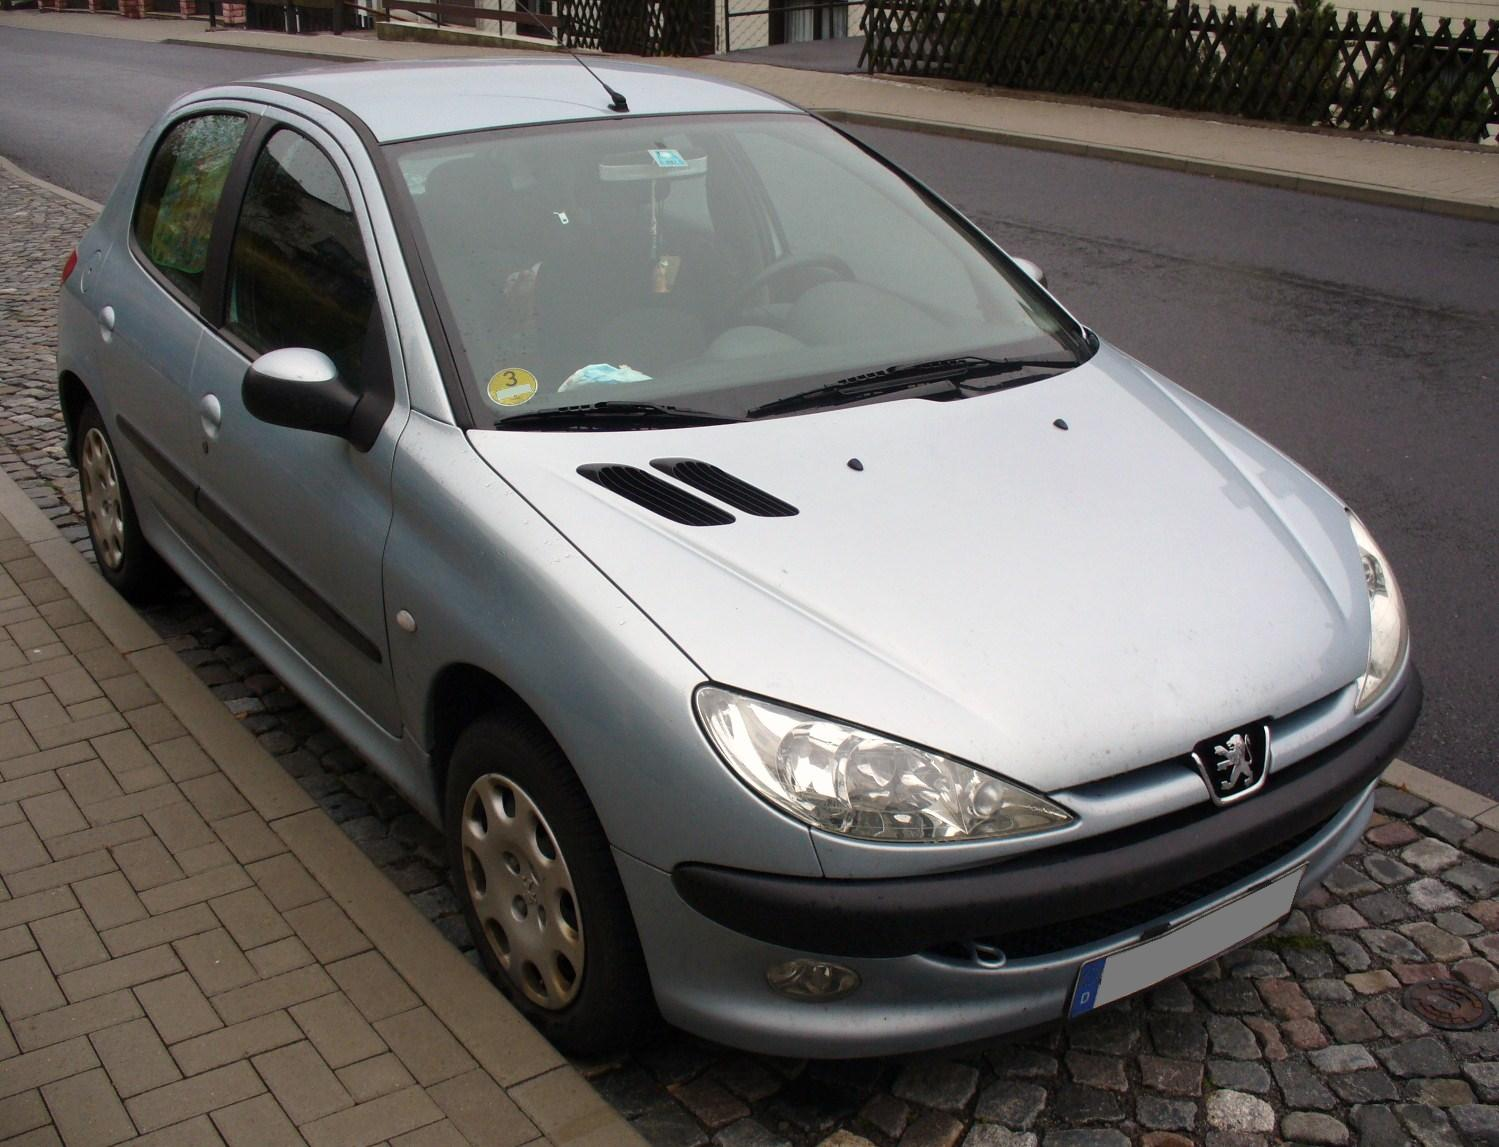 File Peugeot 206 Hdi Jpg Wikimedia Commons